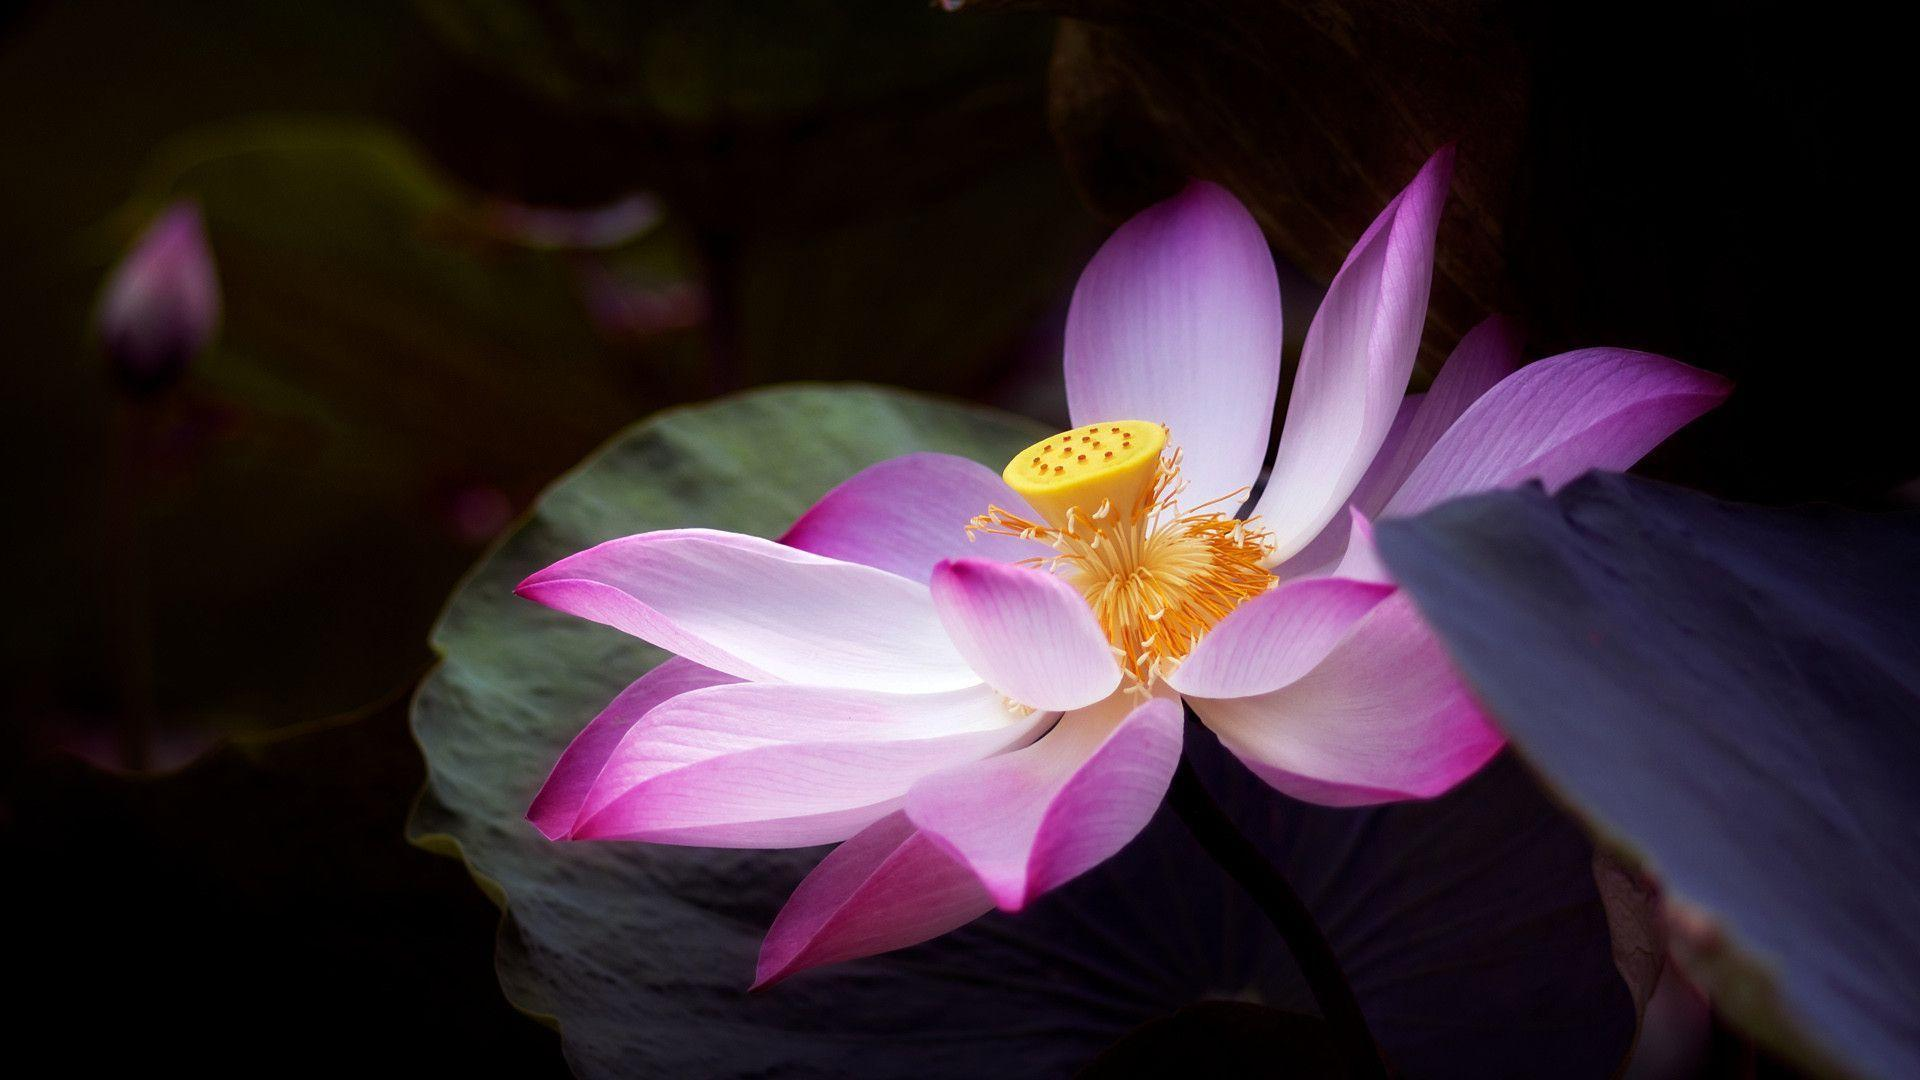 You Can Download The Lotus Flower Wallpaper (1920 X 1080 Px) Here ...